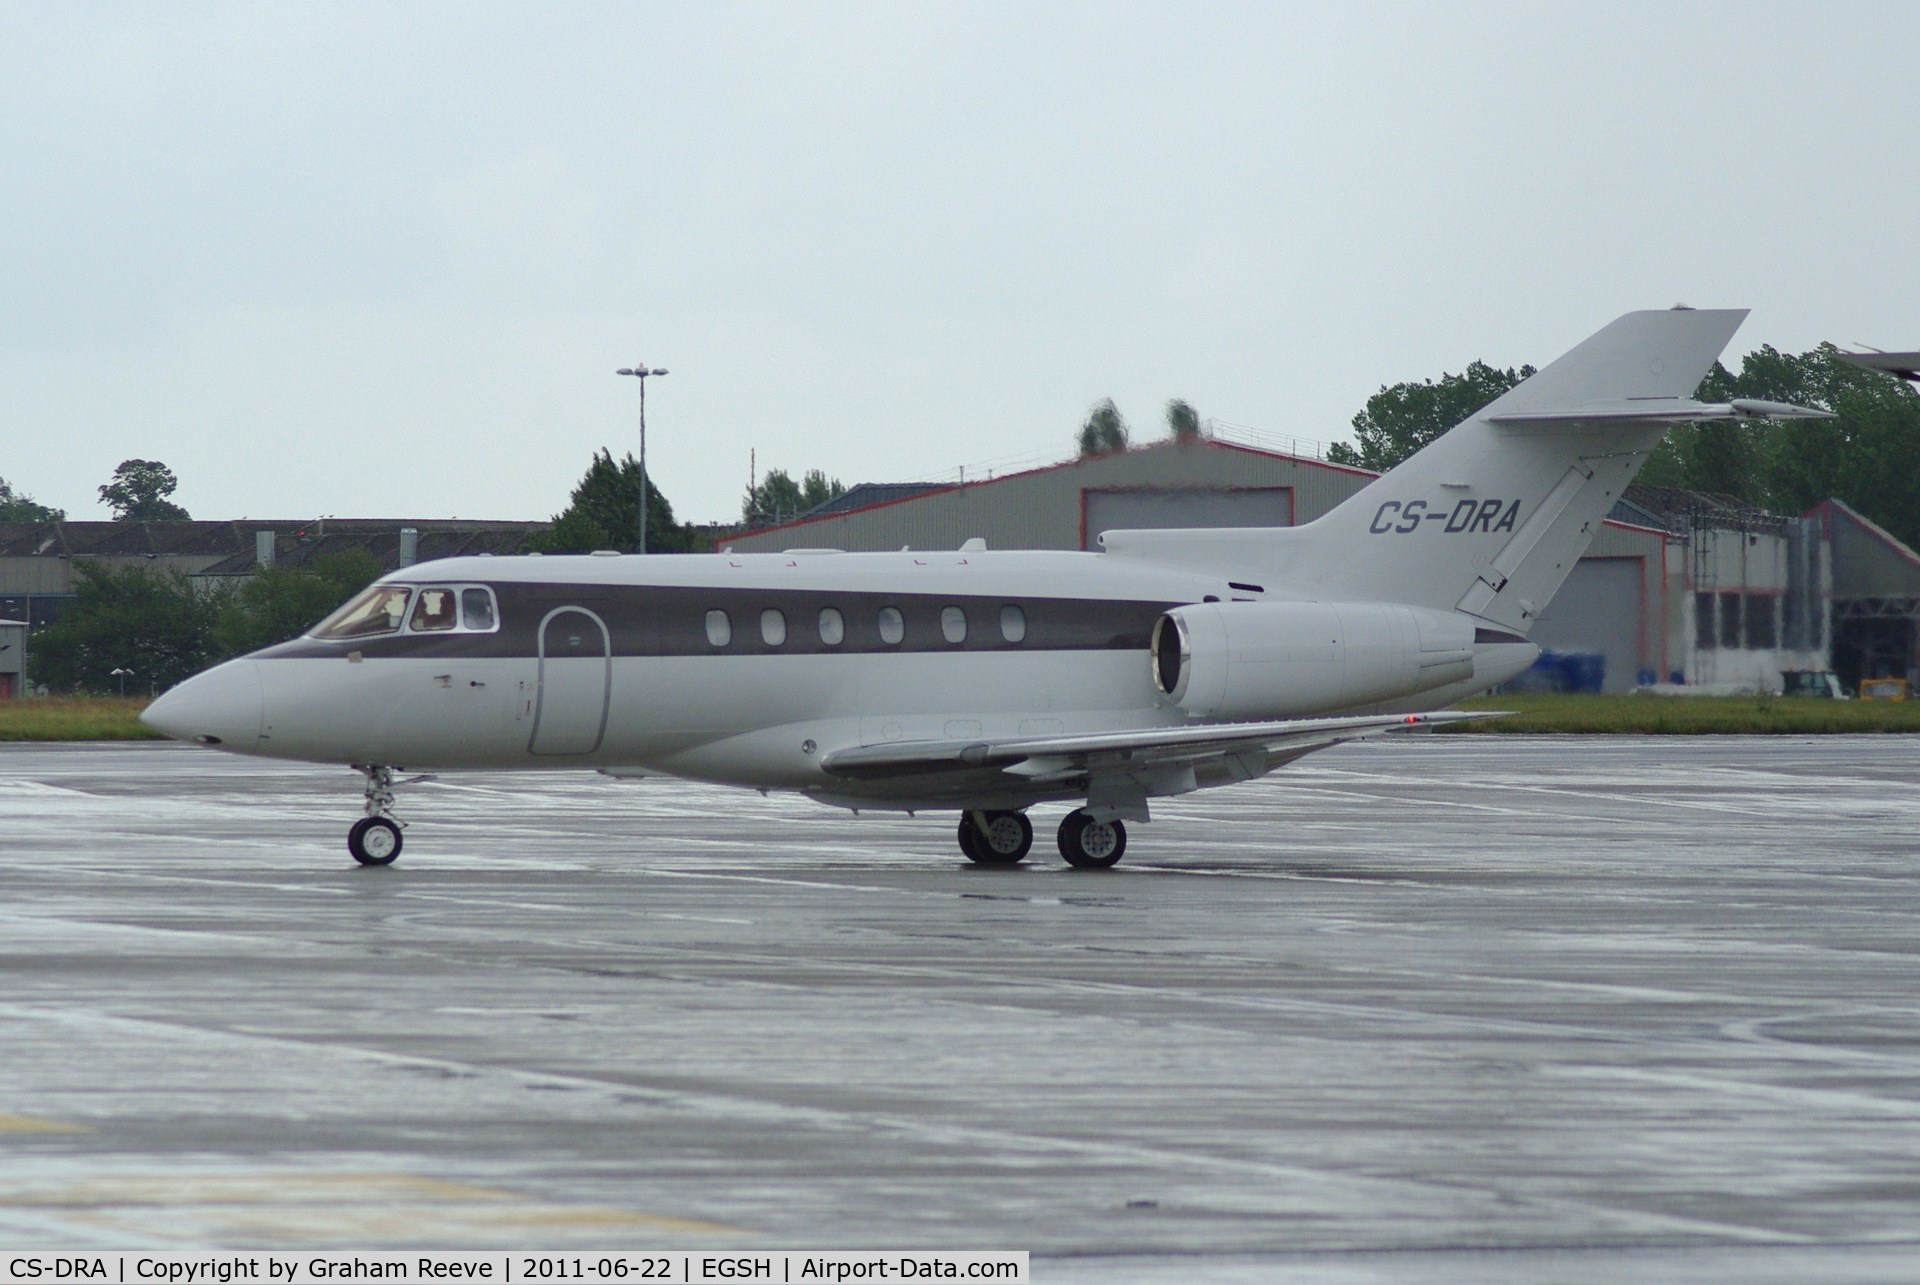 CS-DRA, 2004 Raytheon Hawker 800XP C/N 258686, A very wet afternoon.